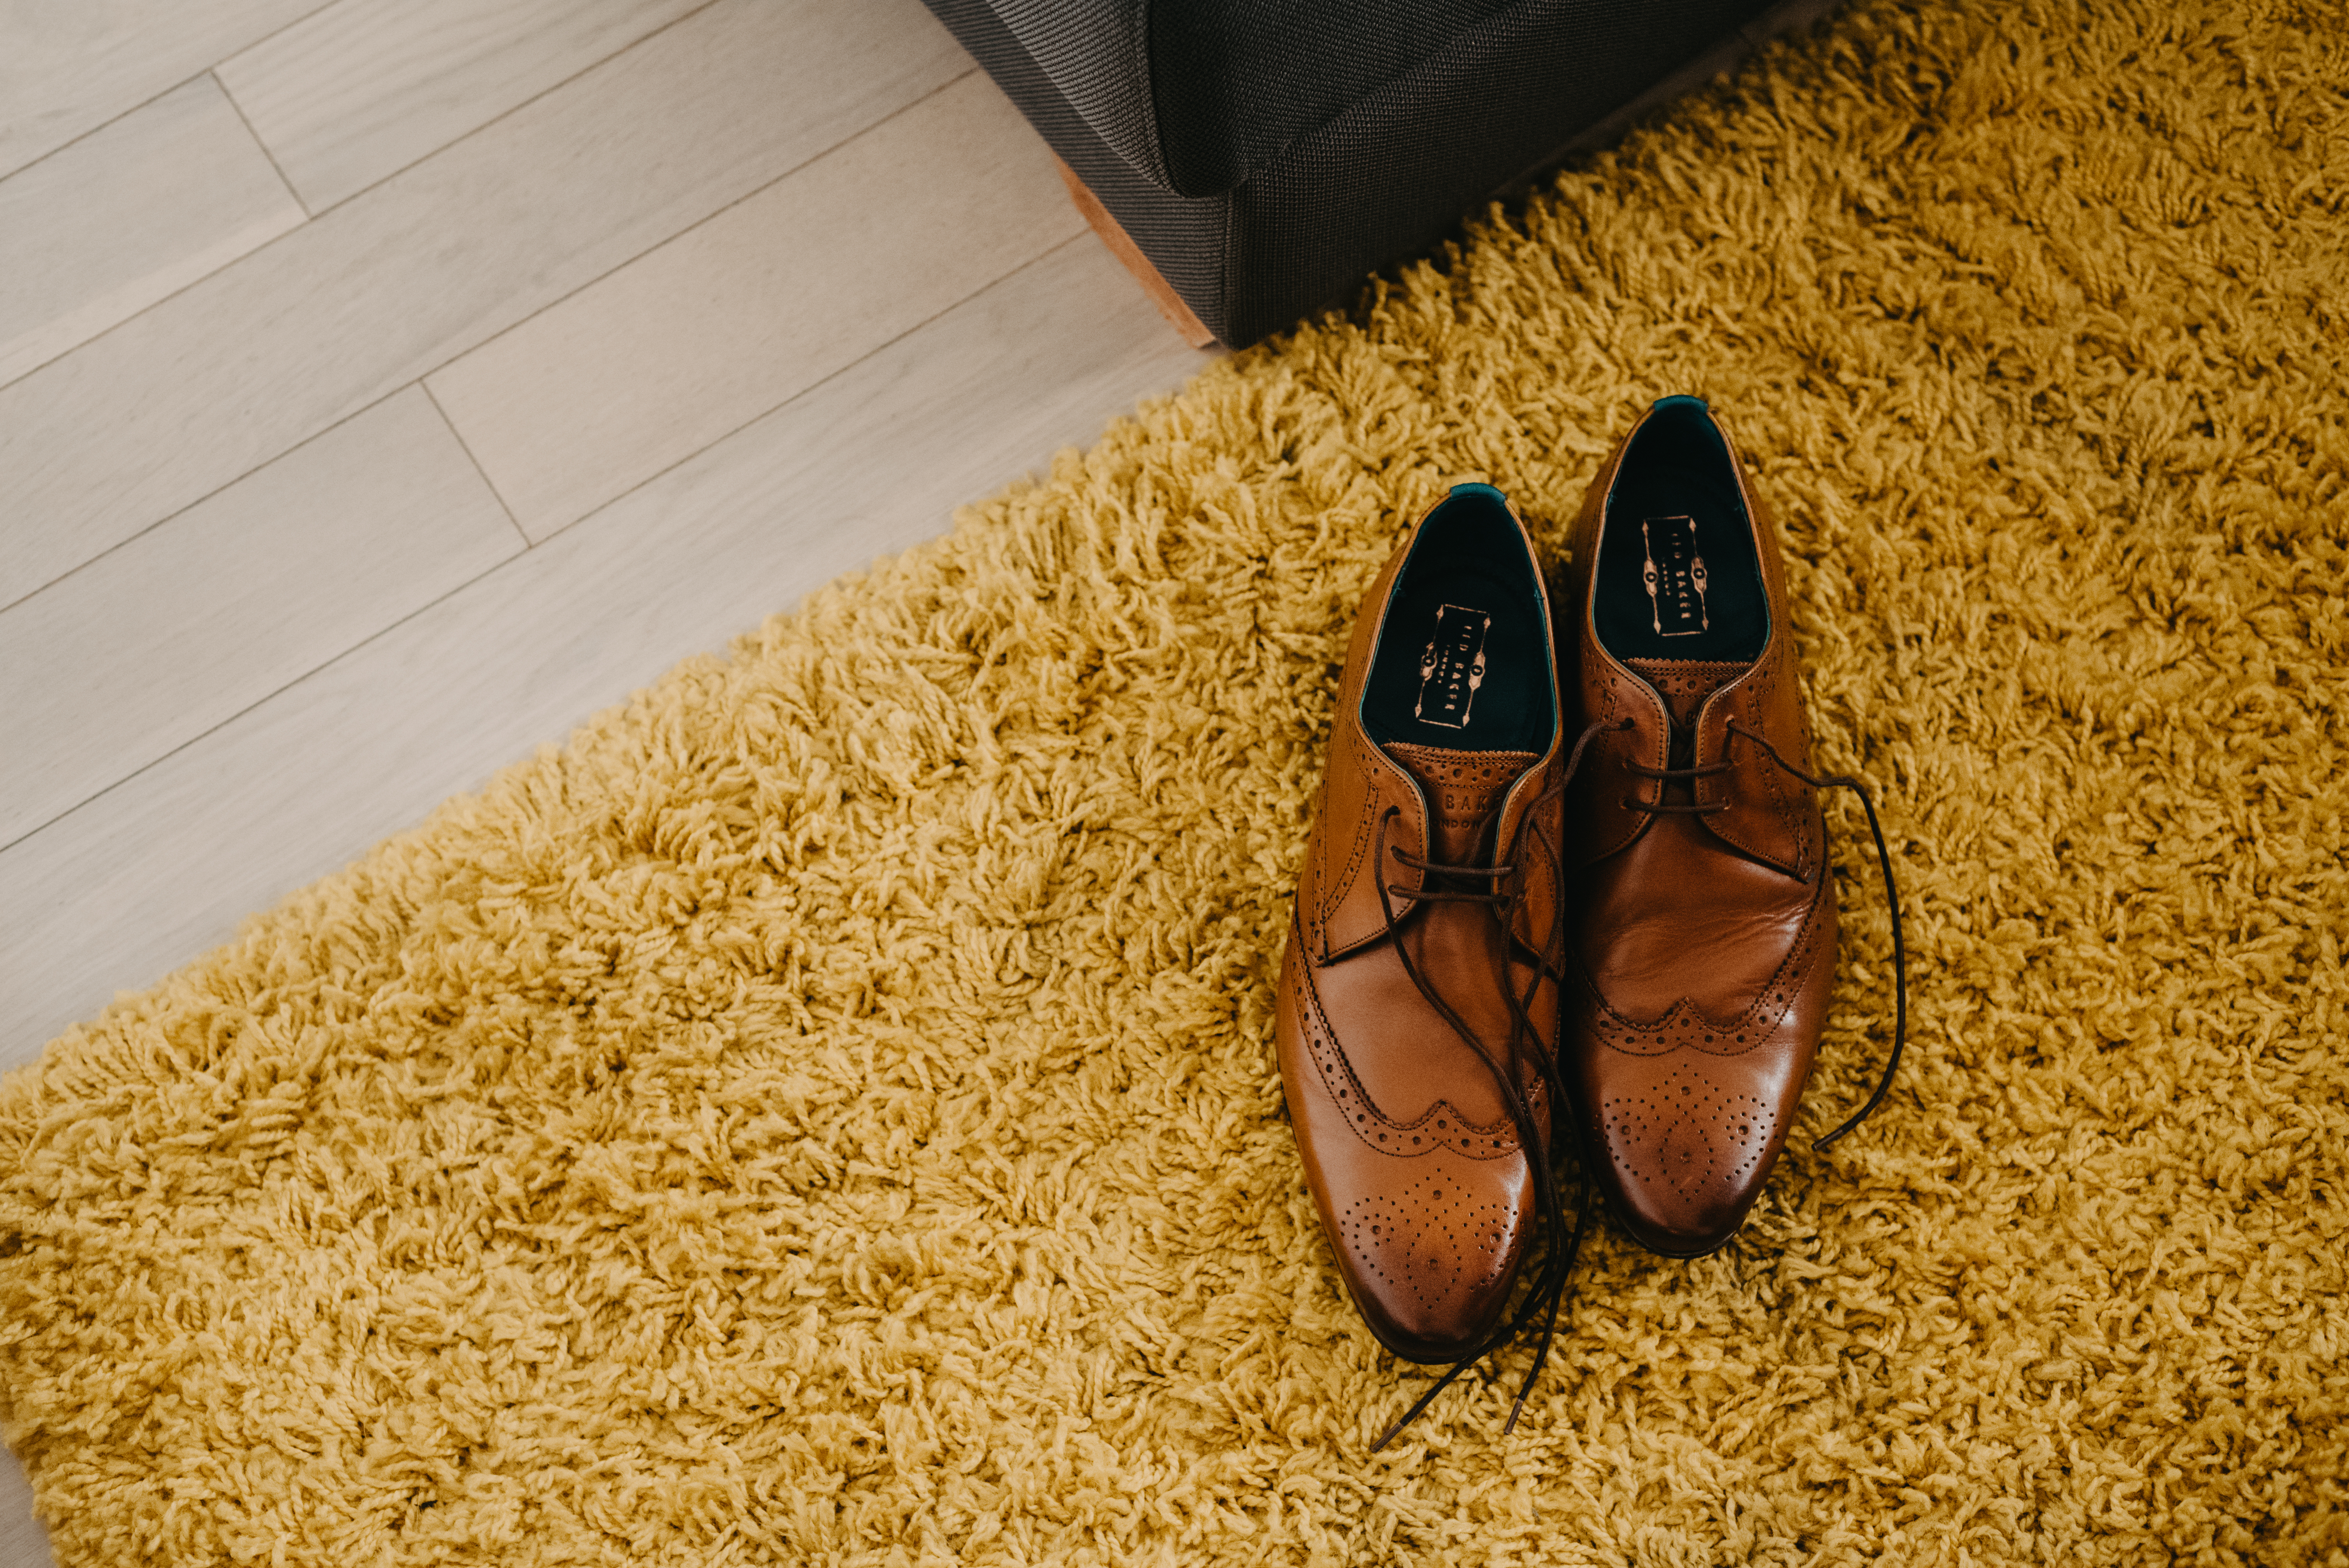 Wedding shoes on a yellow carper